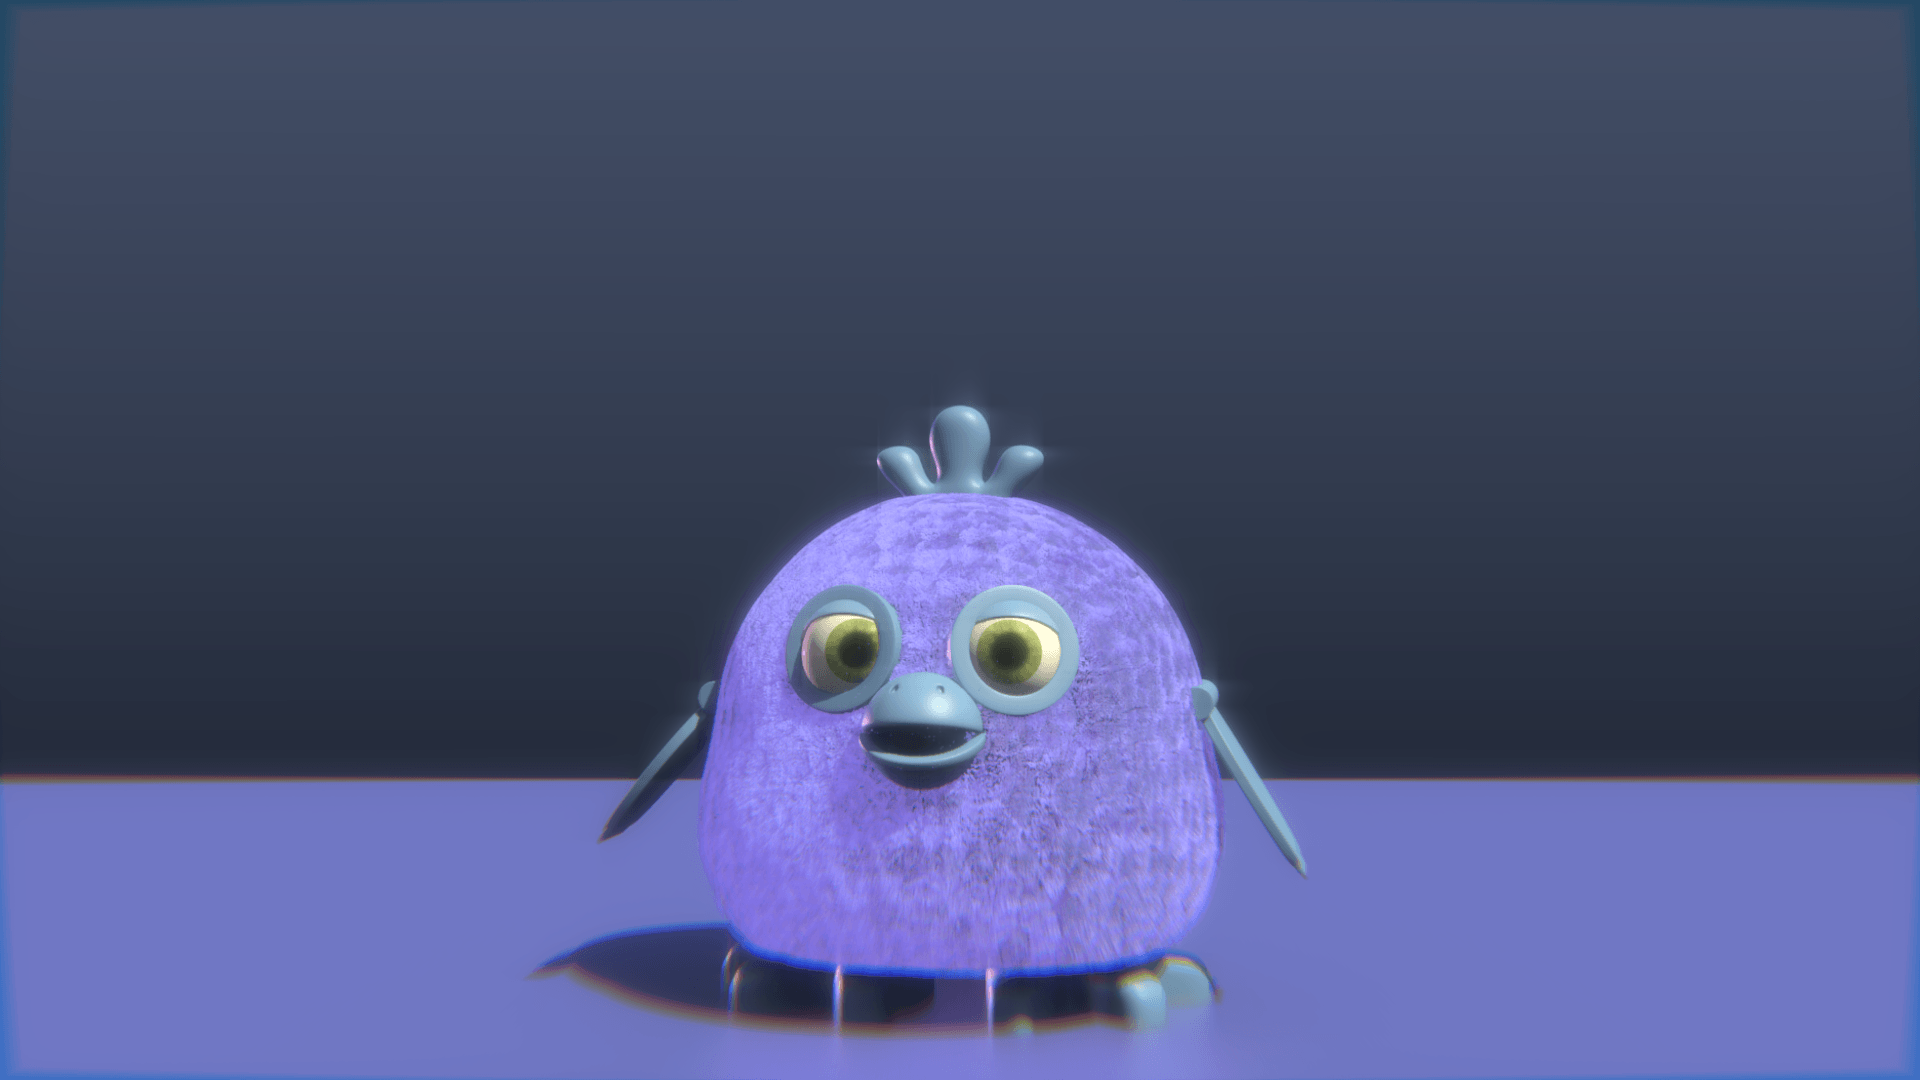 So i made my own brand of Tattletail/Furby/Whatevers : Tattletail